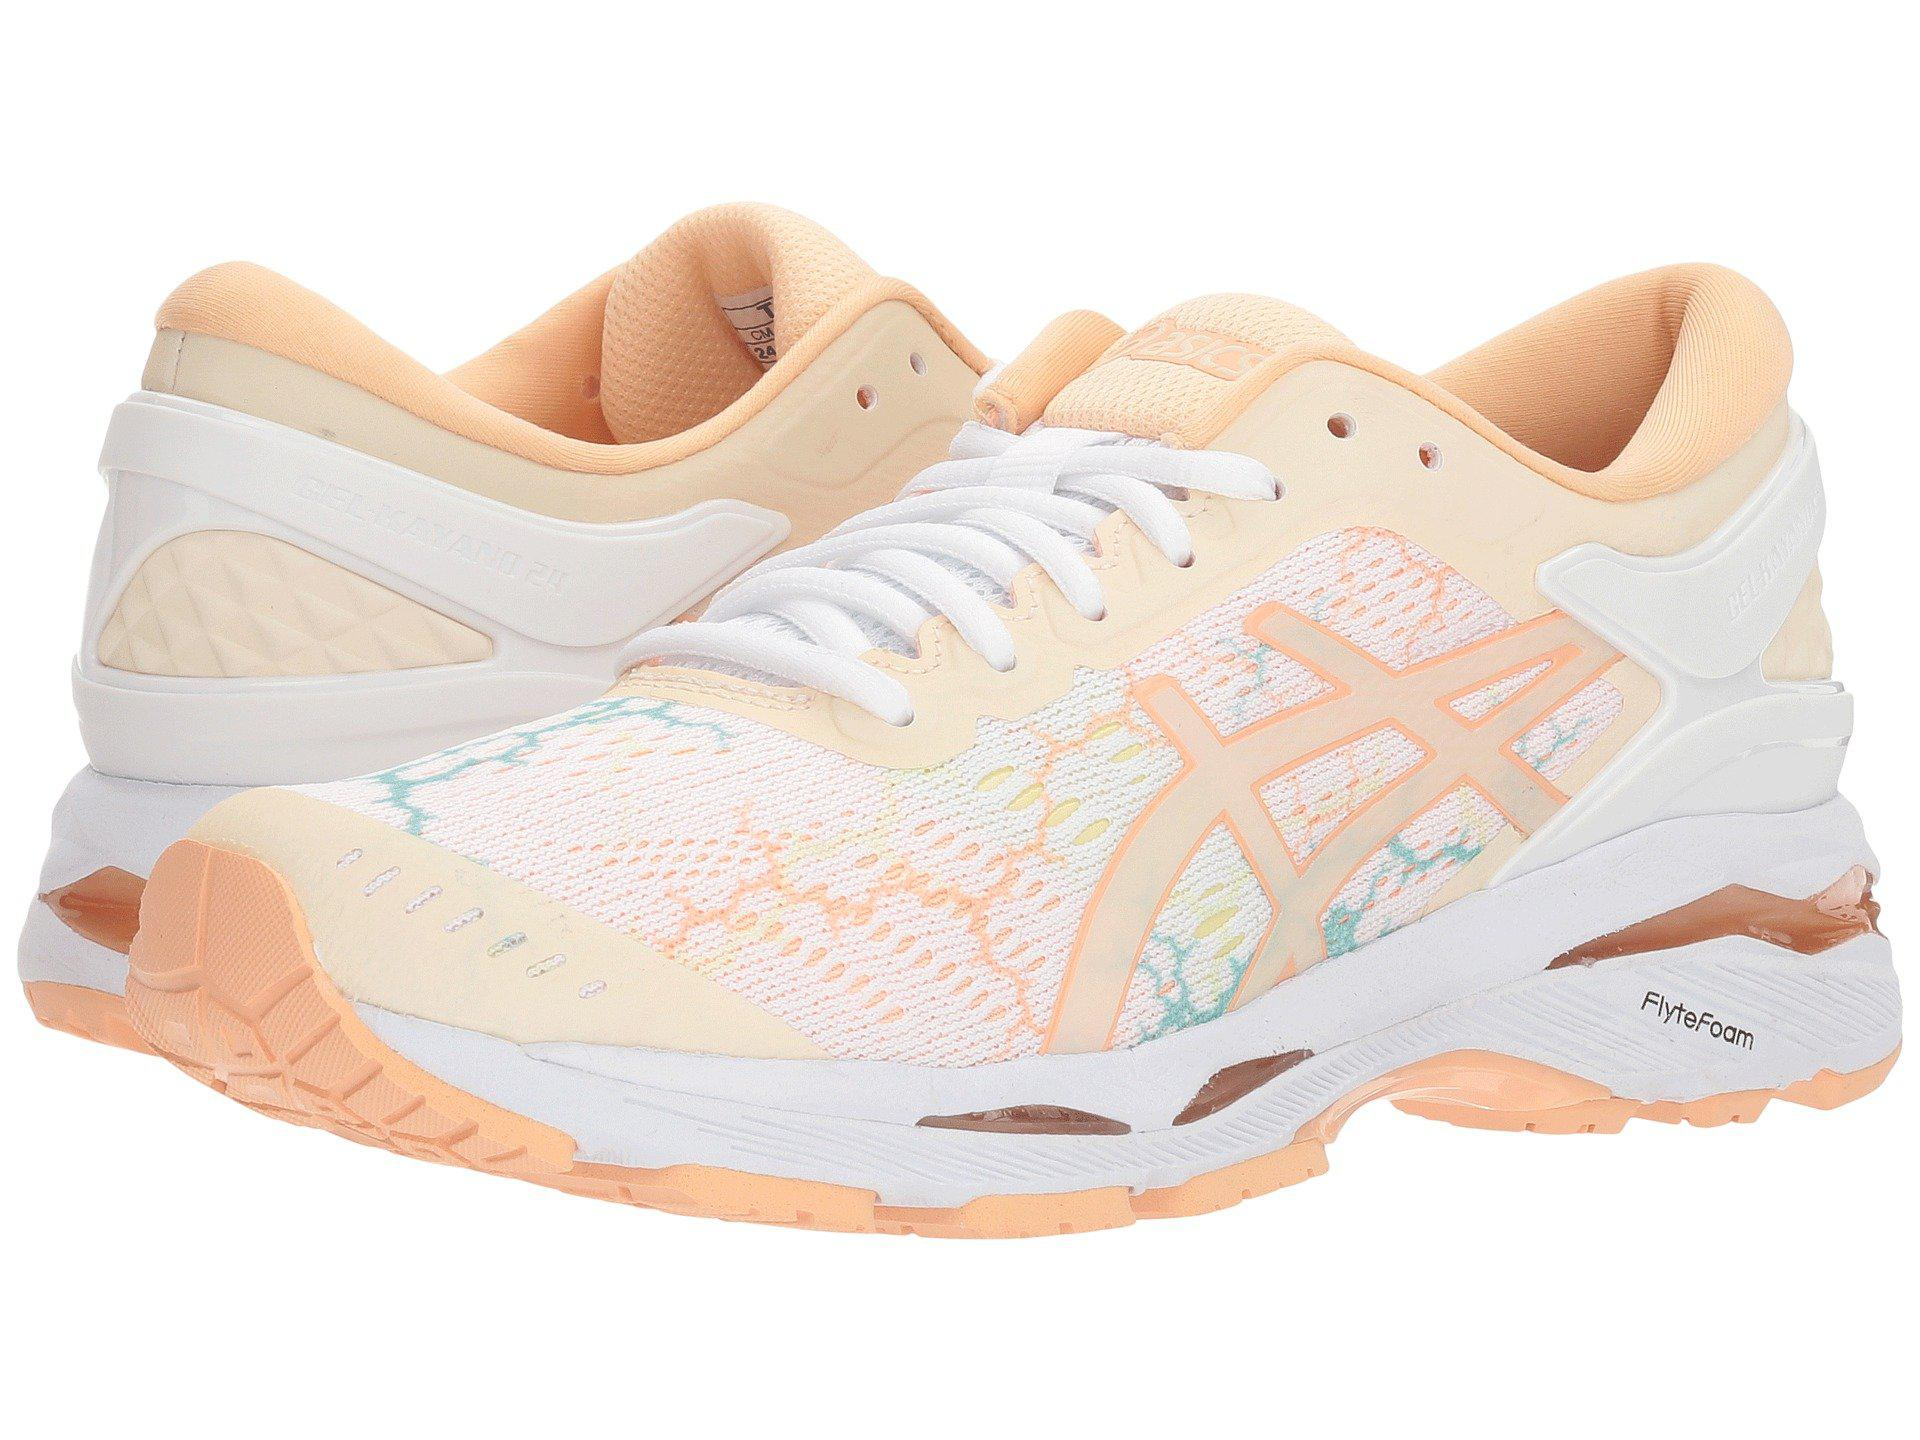 Lyst - Asics Gel-kayano® 24 Lite-show in White - Save 14% ddba1f7ef0